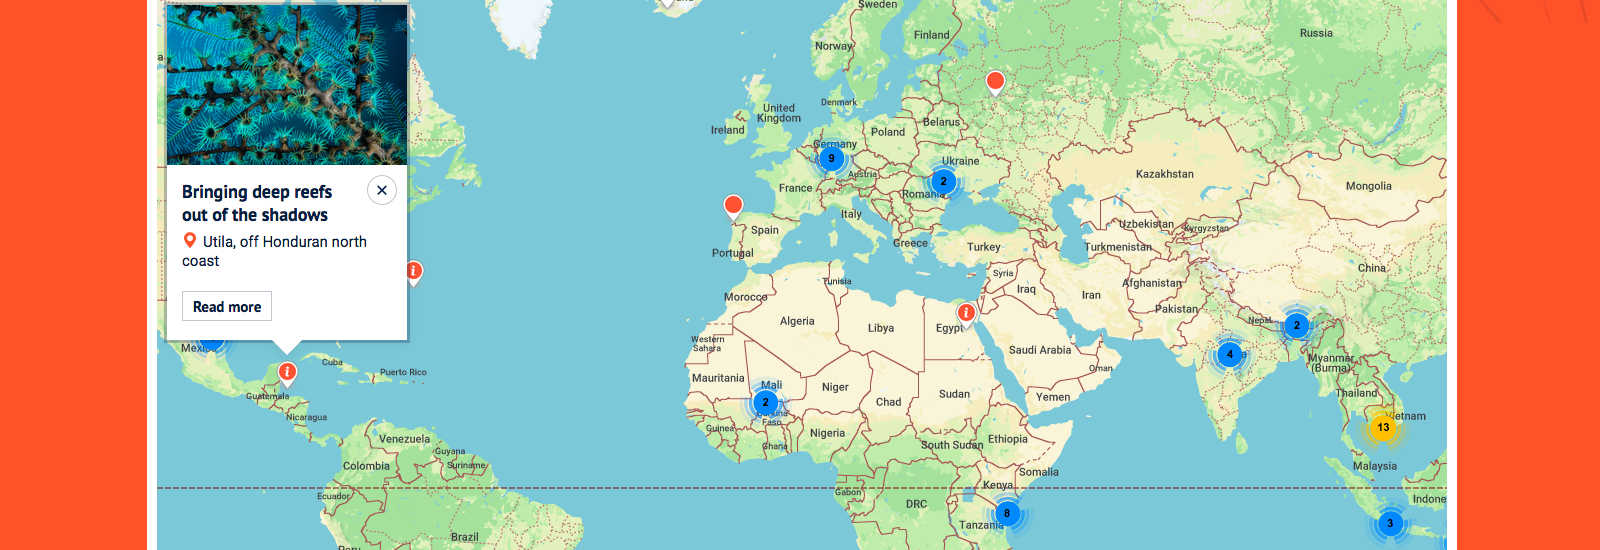 Oxford's Global Research Map